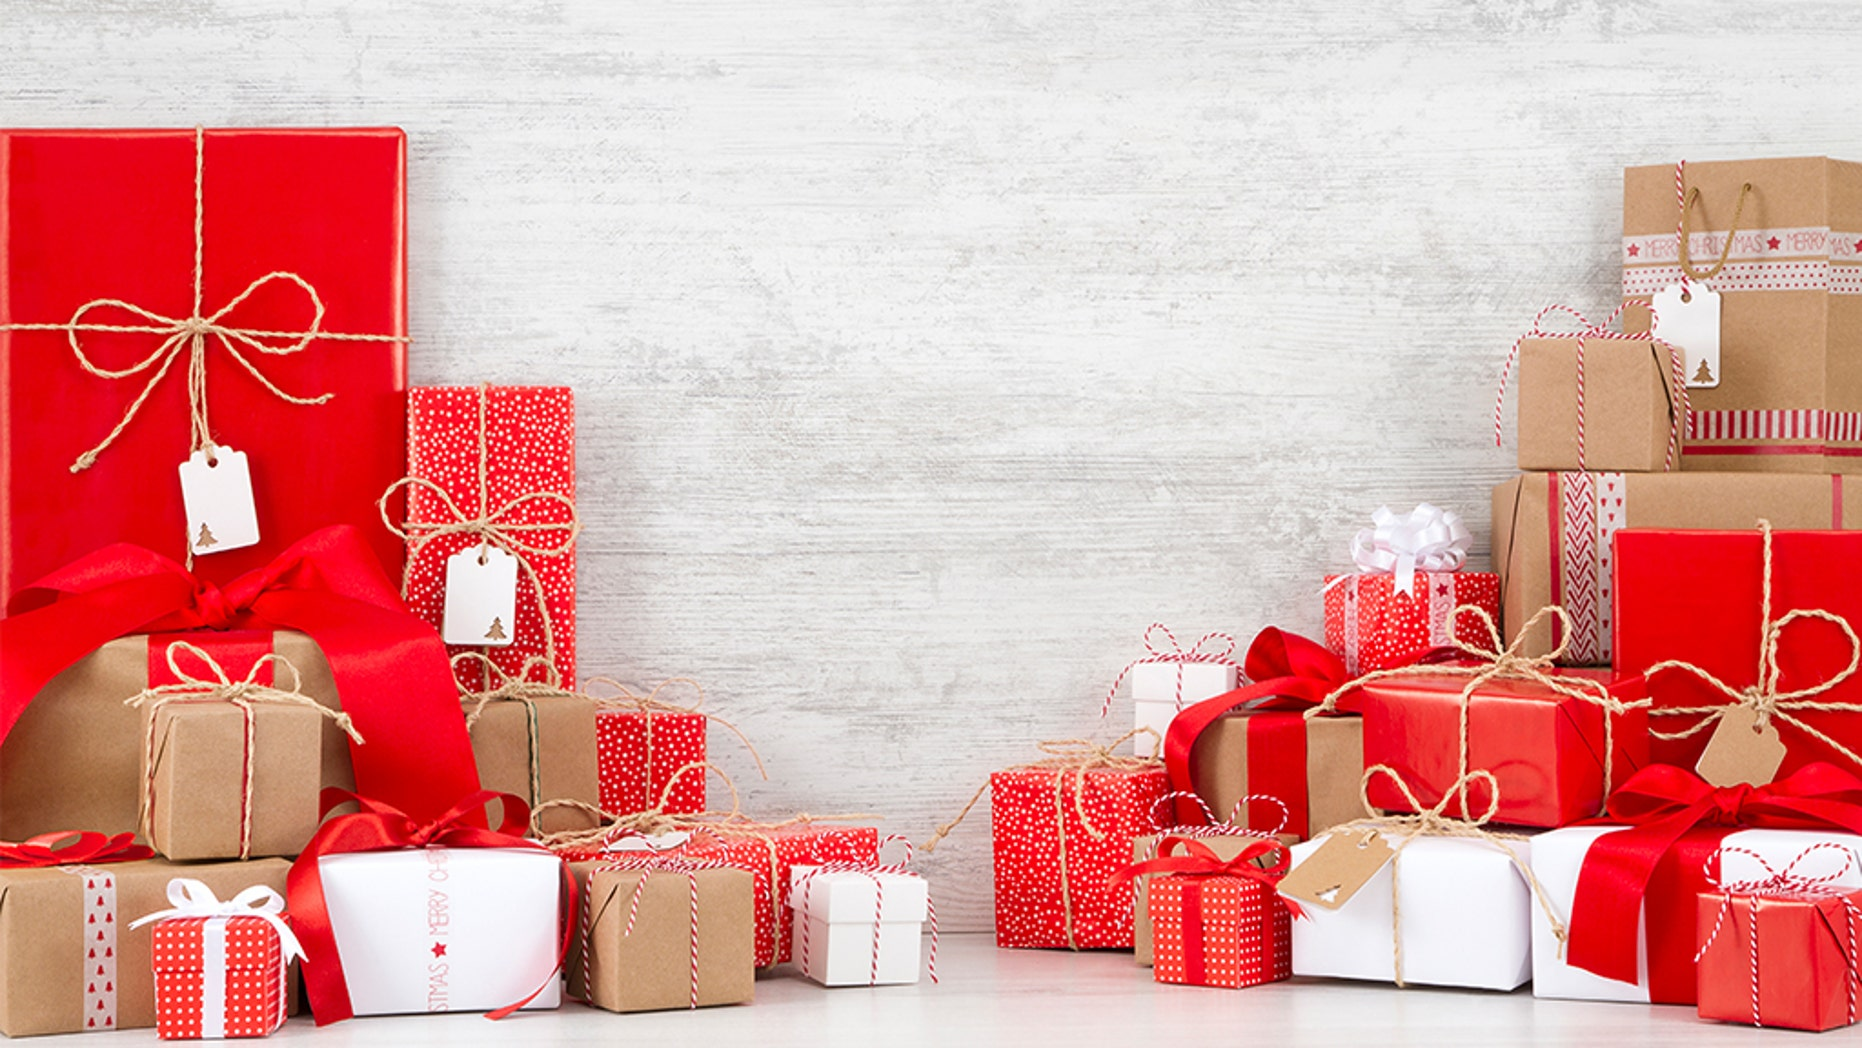 Dying man leaves 14 years of Christmas presents for neighbor's daughter